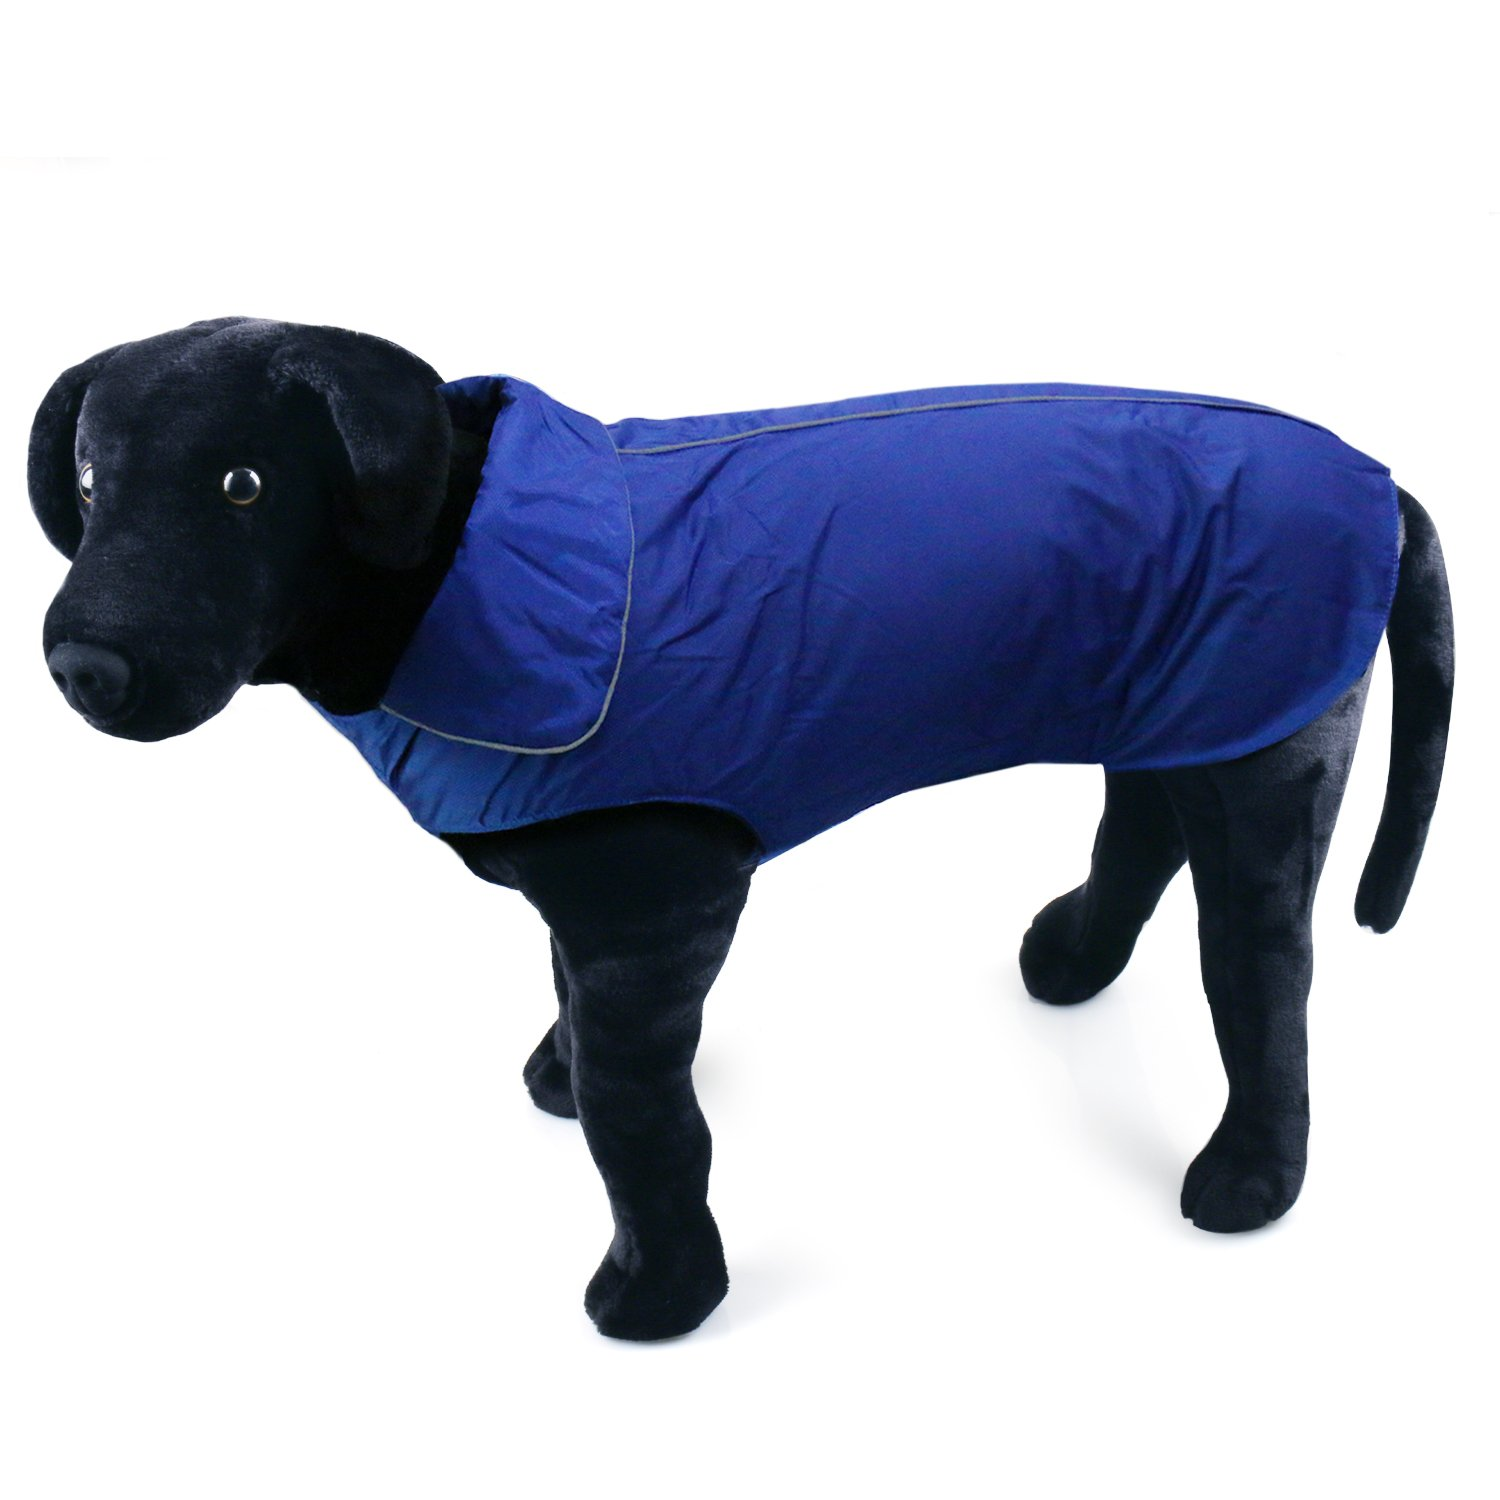 bluee XS(chest 15.7\ bluee XS(chest 15.7\ RilexAwhile Dog Jacket, Cozy Waterproof Windproof Polyester-Fleece Lined Reflective Pet Jacket Dog Vest Warm Dog Apparel for Small Medium Large Dogs in Winter Autumn Days (XS(Chest 15.7 ), bluee)